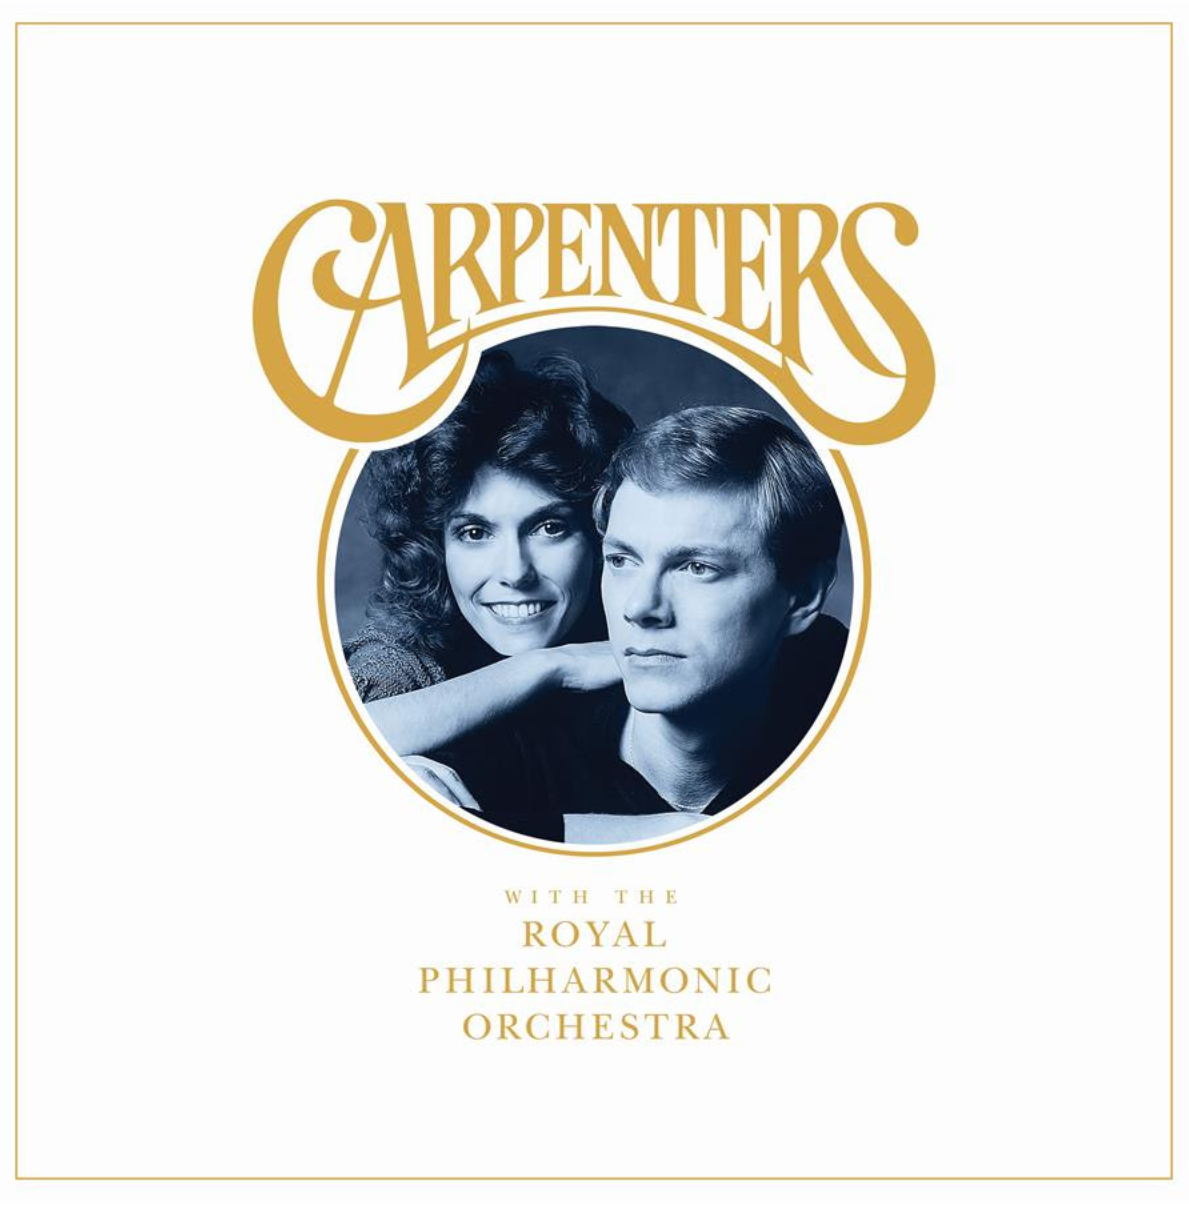 The Carpenters with Royal Philharmonic Orchestra